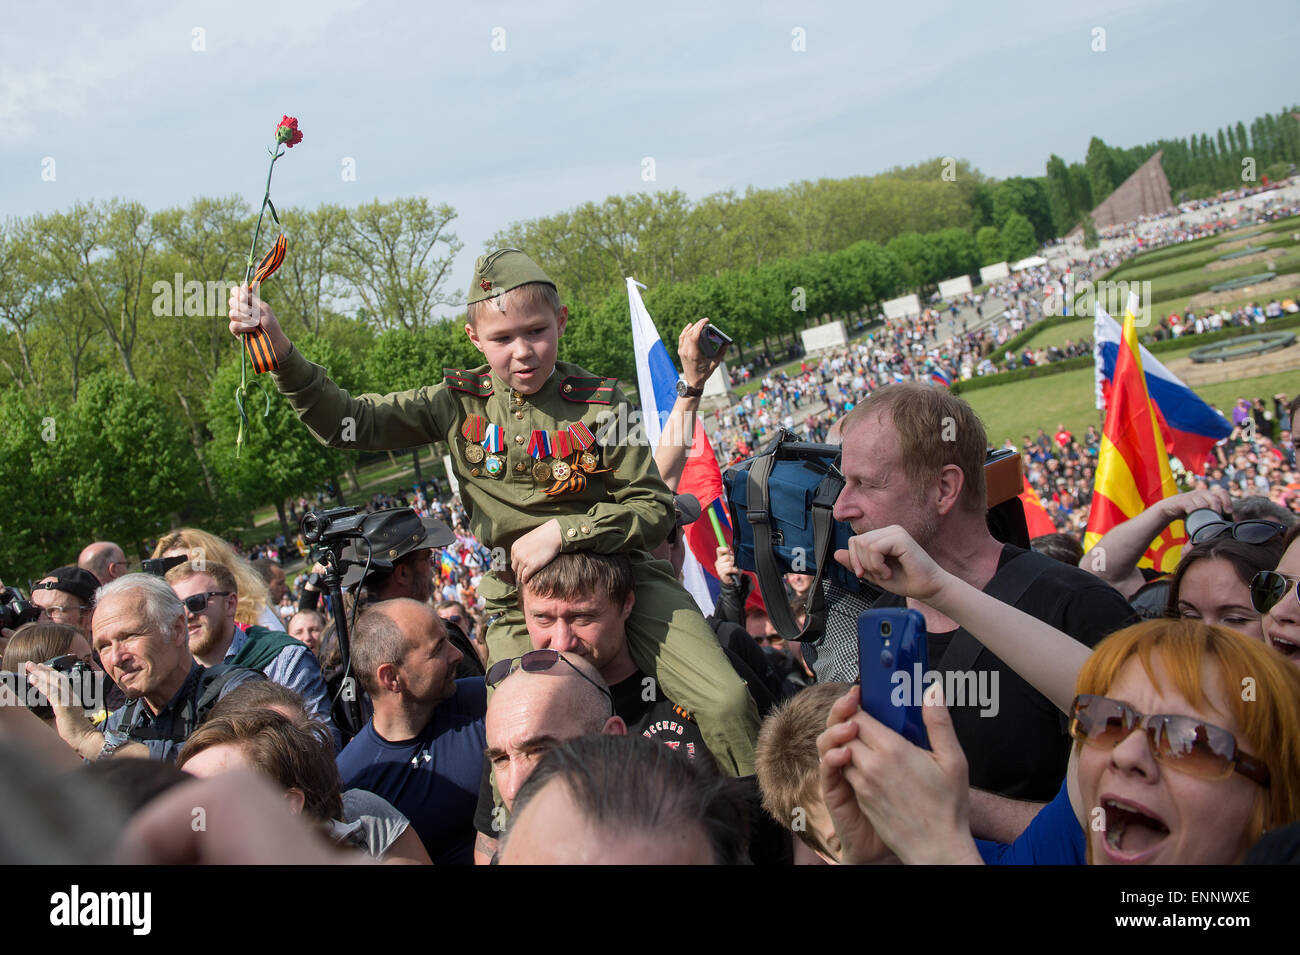 People gather at the Soviet Memorial in Treptower Park to commemorate the end of the war, Berlin, 8 May 2015. The Stock Photo